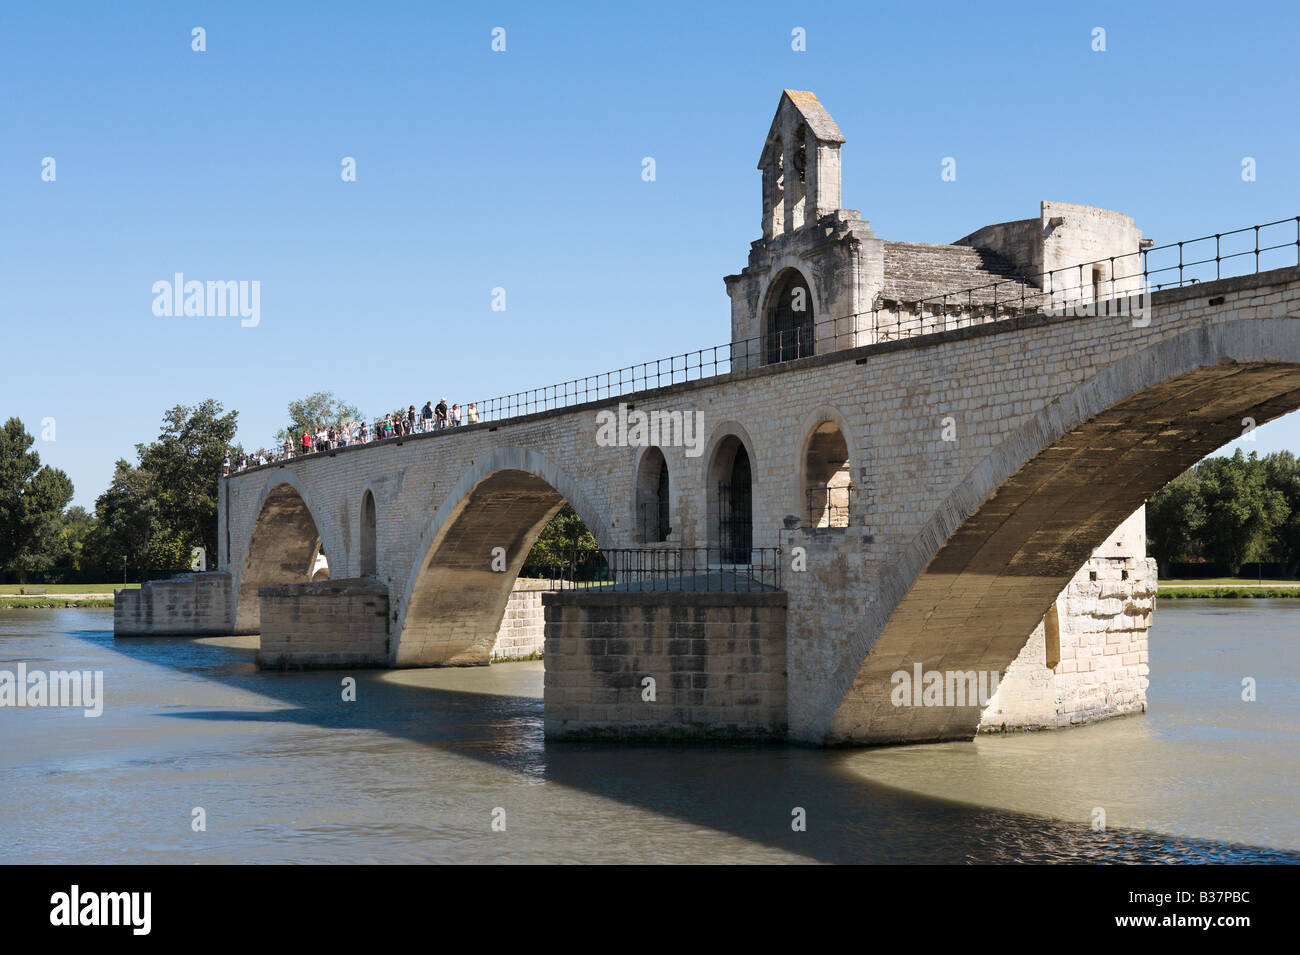 Pont Saint Benezet (the famous Pont d'Avignon) on the River Rhone, Avignon, Provence, France - Stock Image